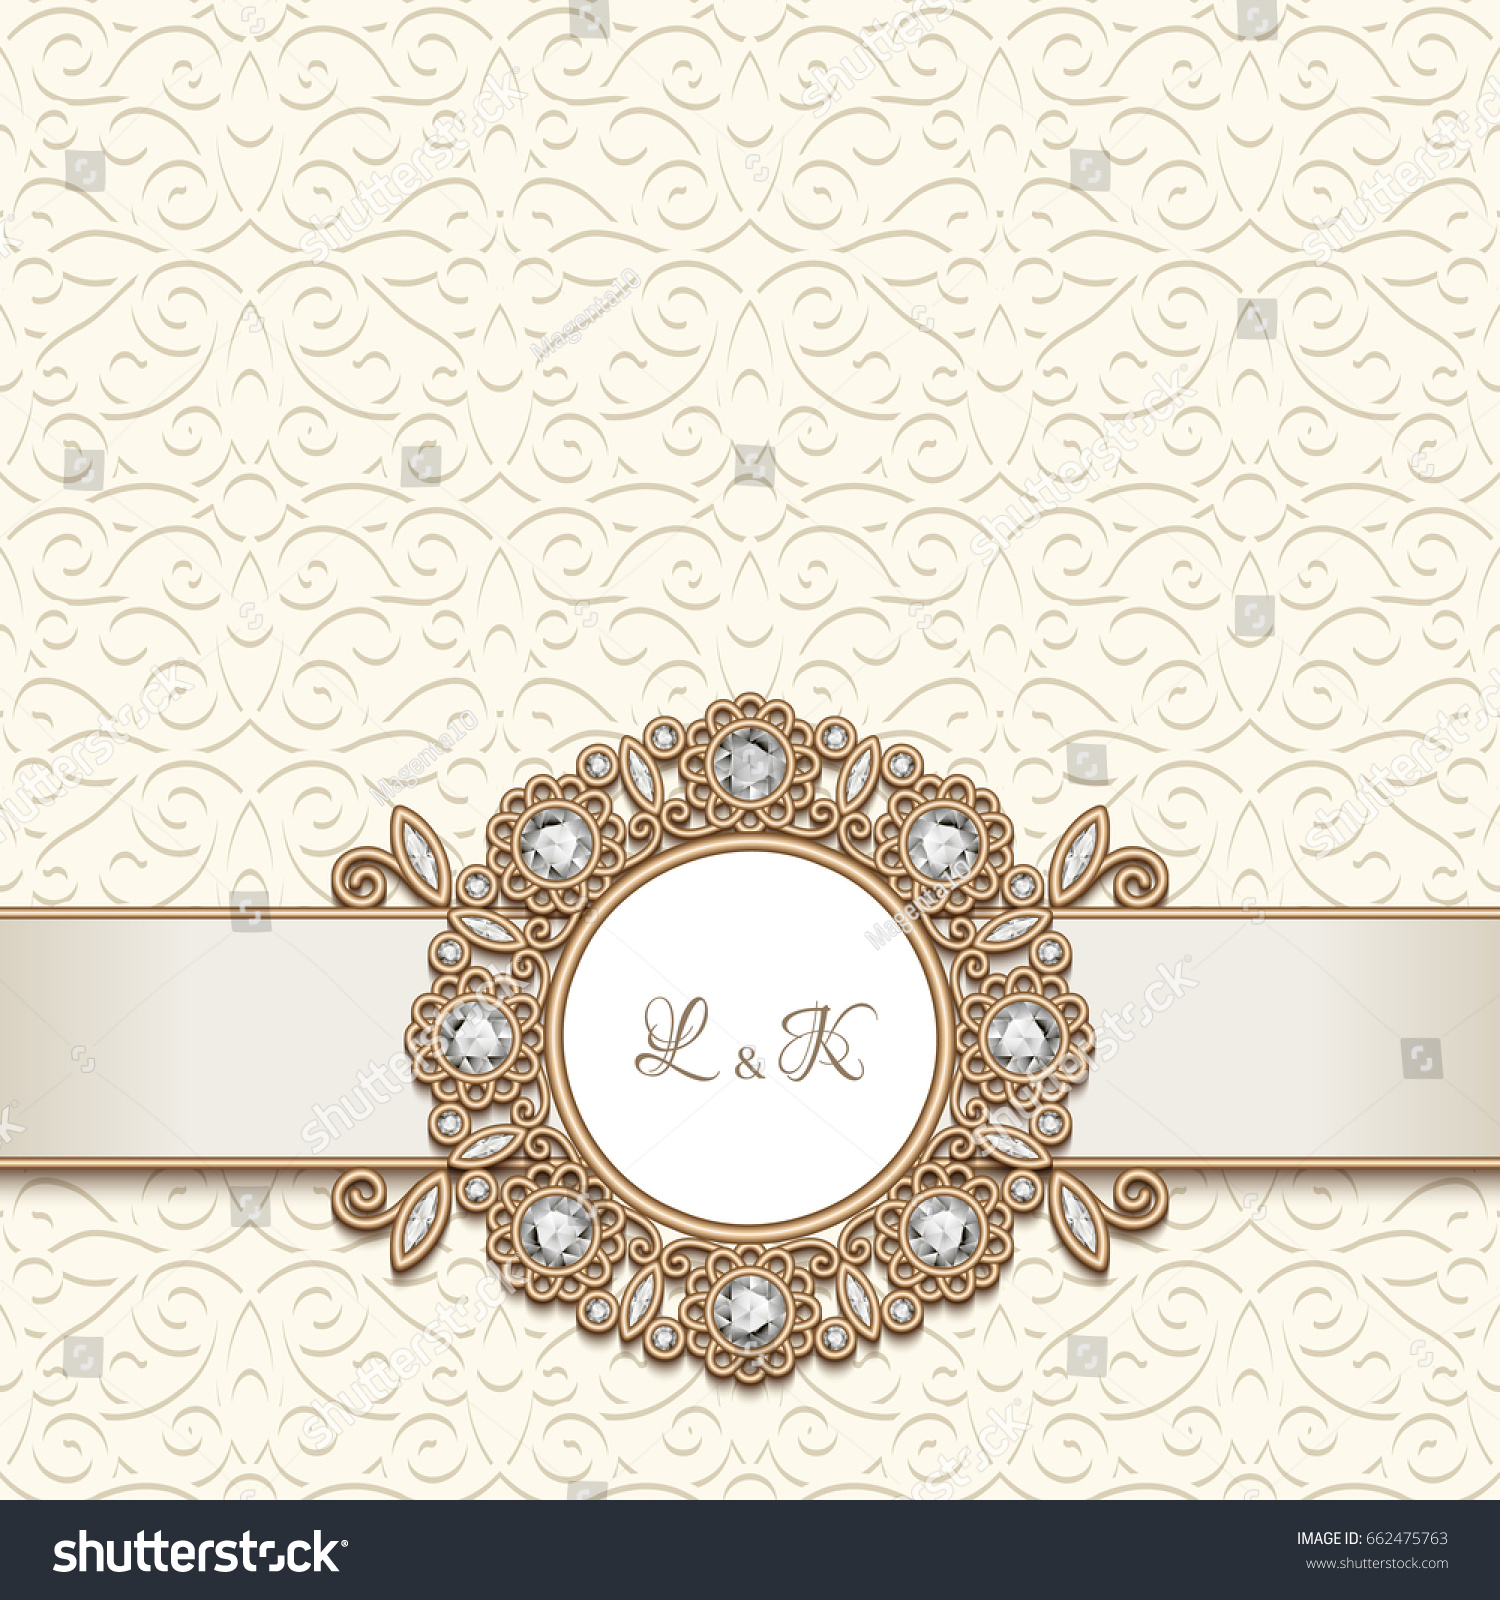 vintage gold jewelry background antique jewellery stock vector royalty free 662475763 https www shutterstock com image vector vintage gold jewelry background antique jewellery 662475763